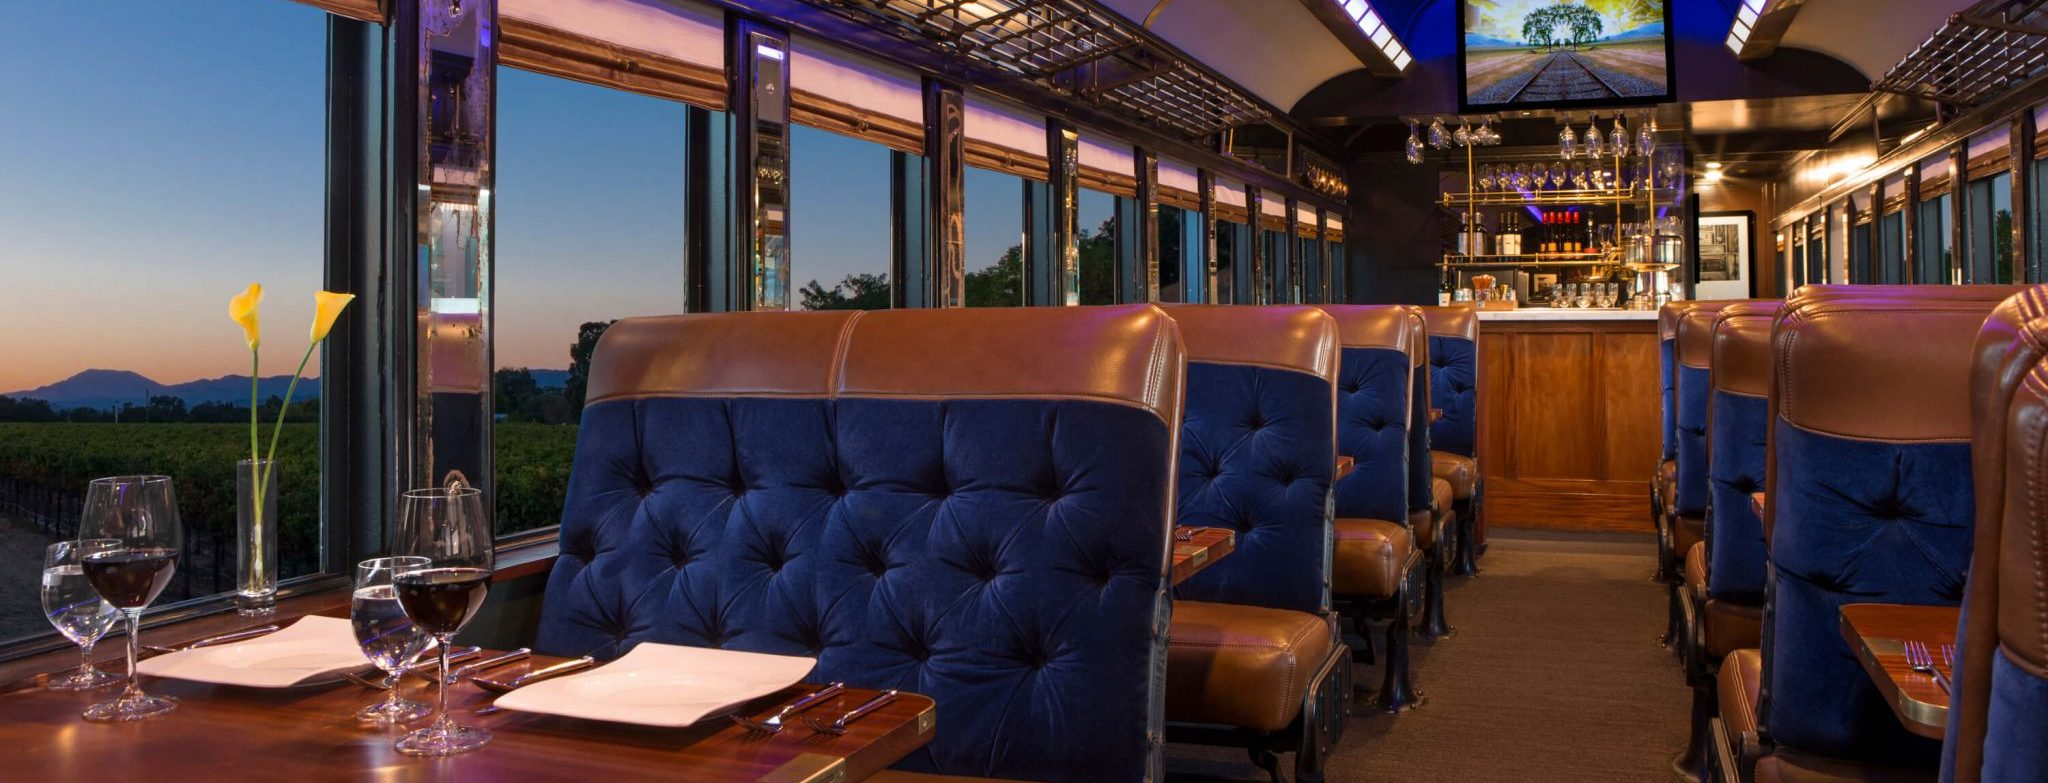 The Best Napa Valley Wine Train Experiences